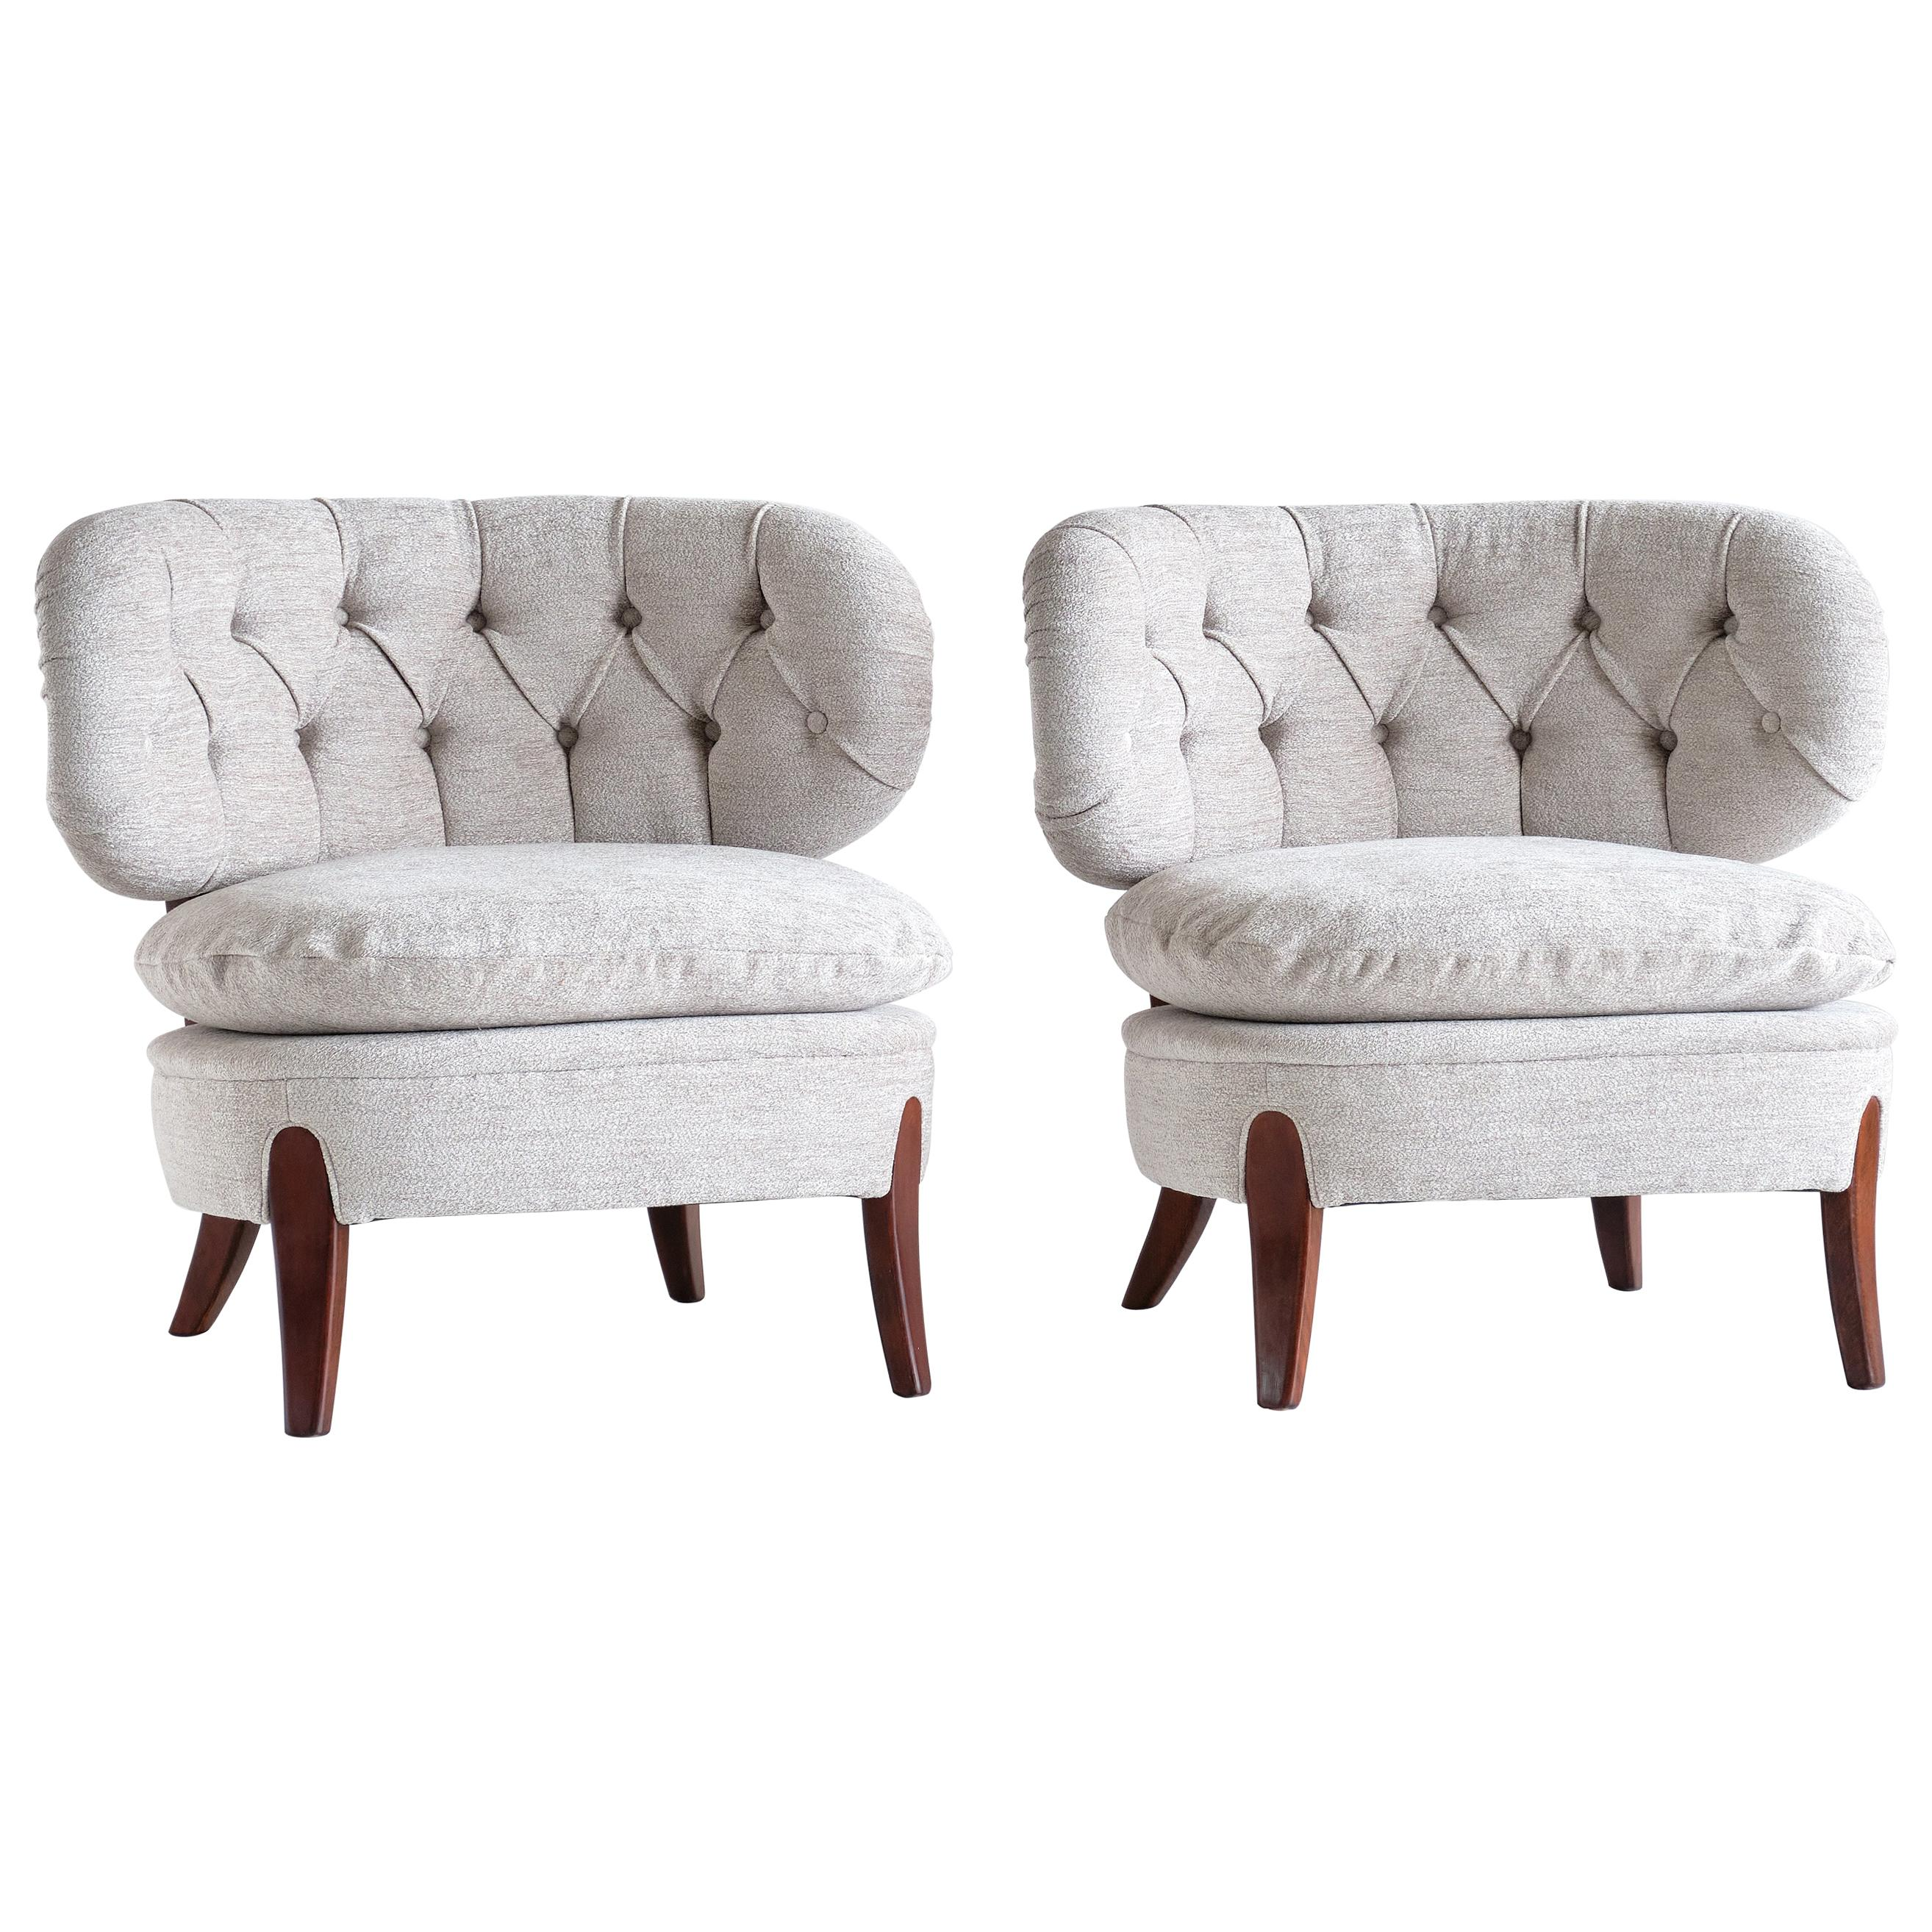 Pair of Otto Schulz Lounge Chairs in Gray Chenille and Beech, Sweden, 1940s